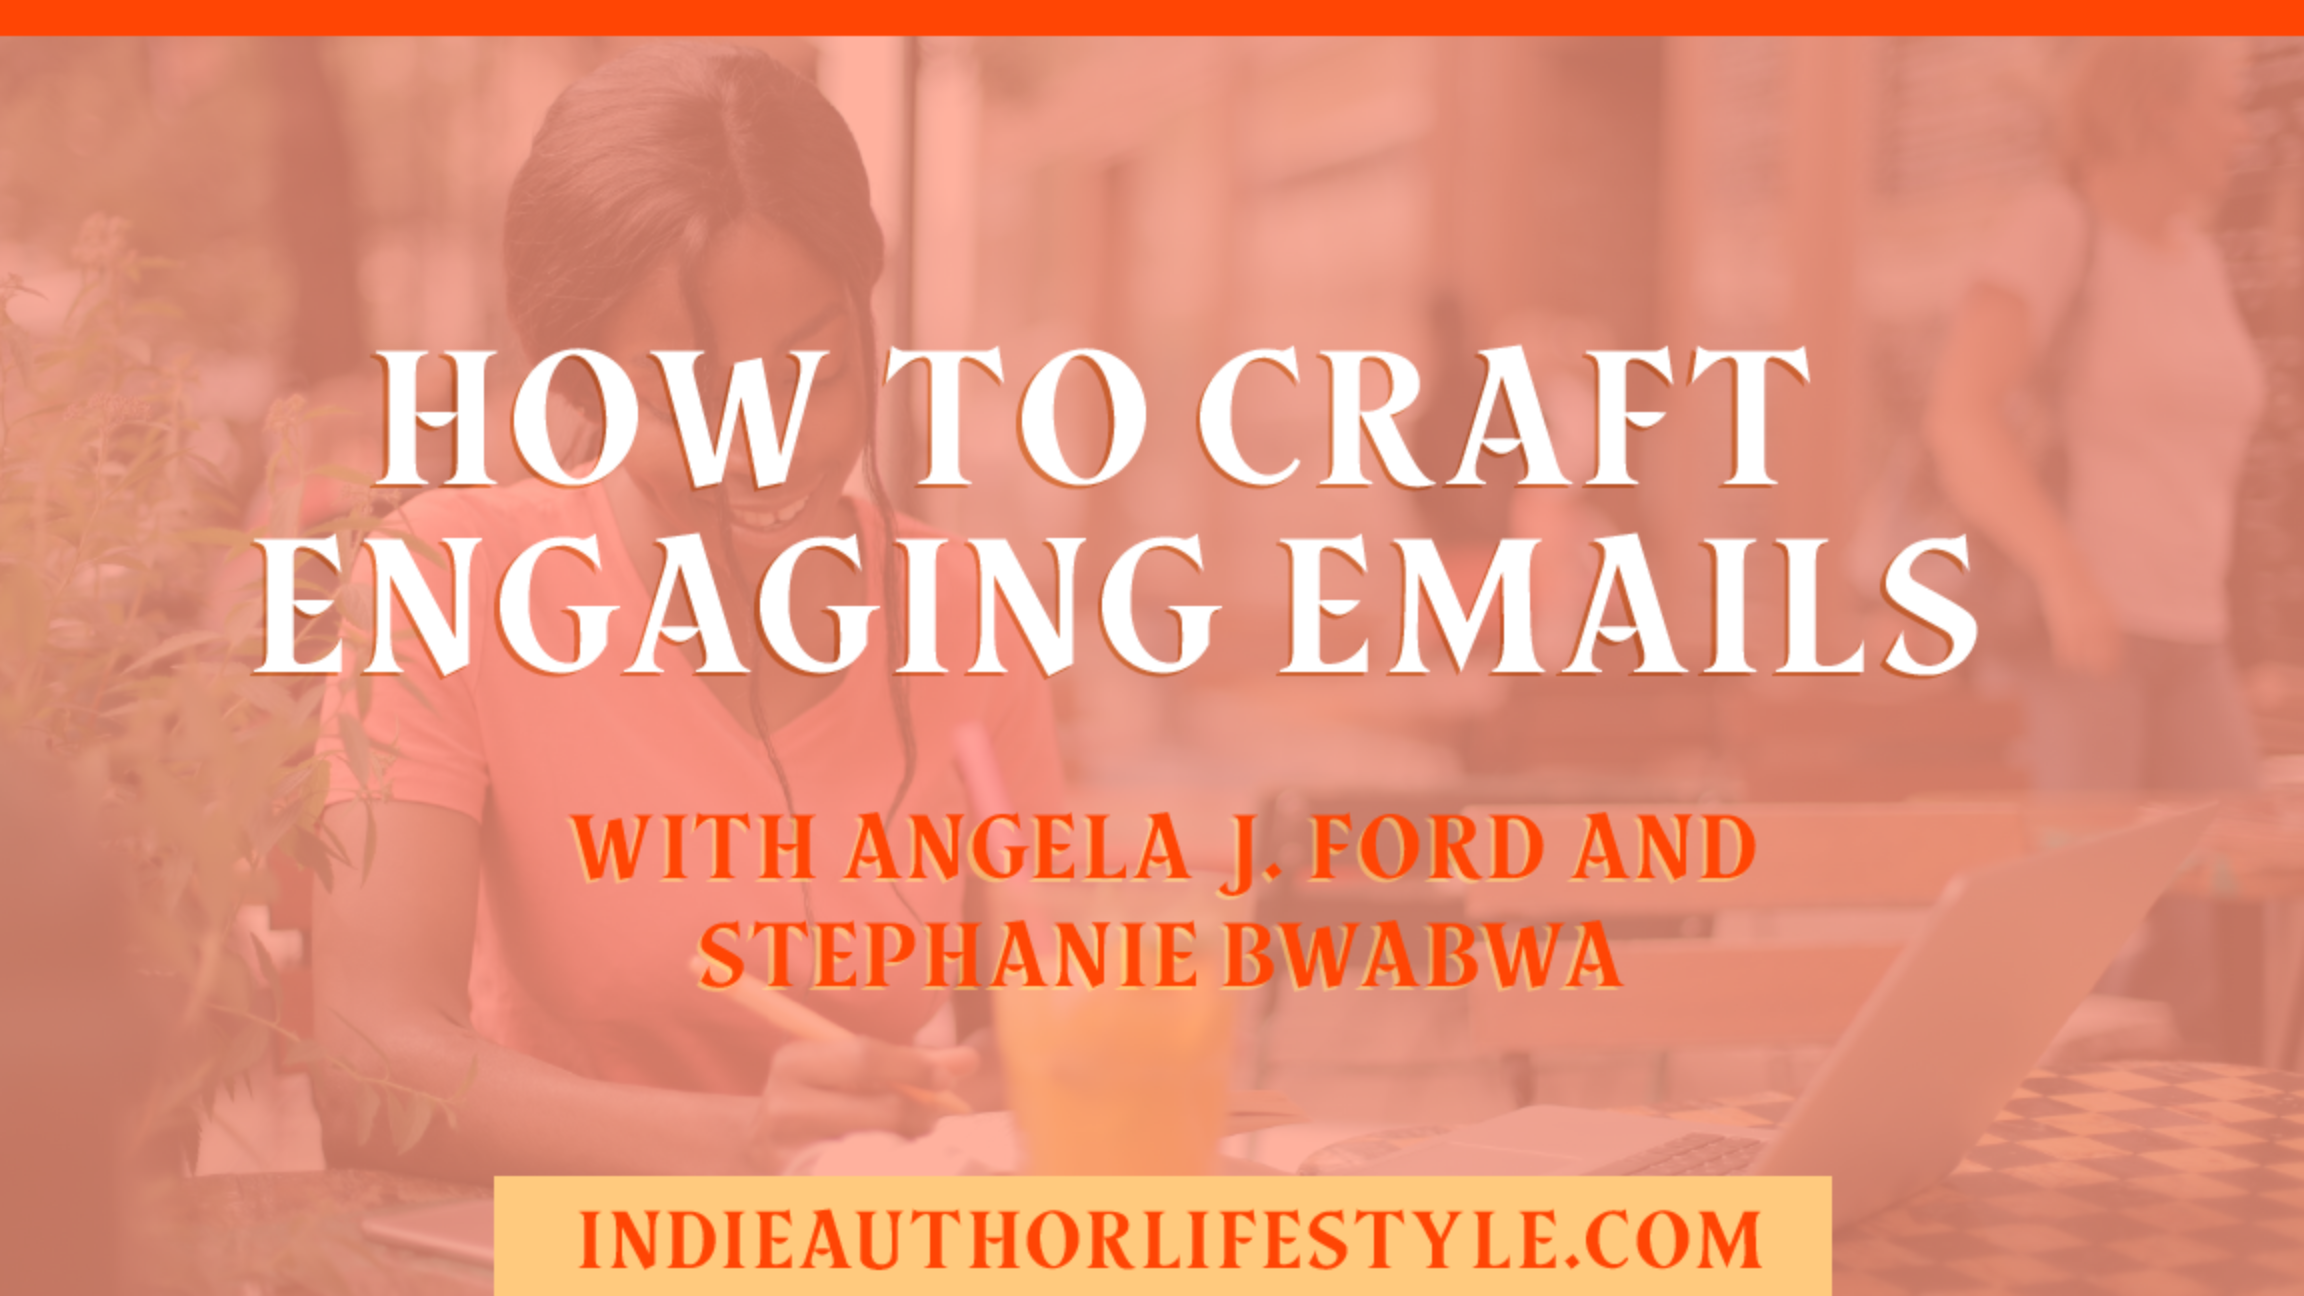 How to Craft Engaging Emails